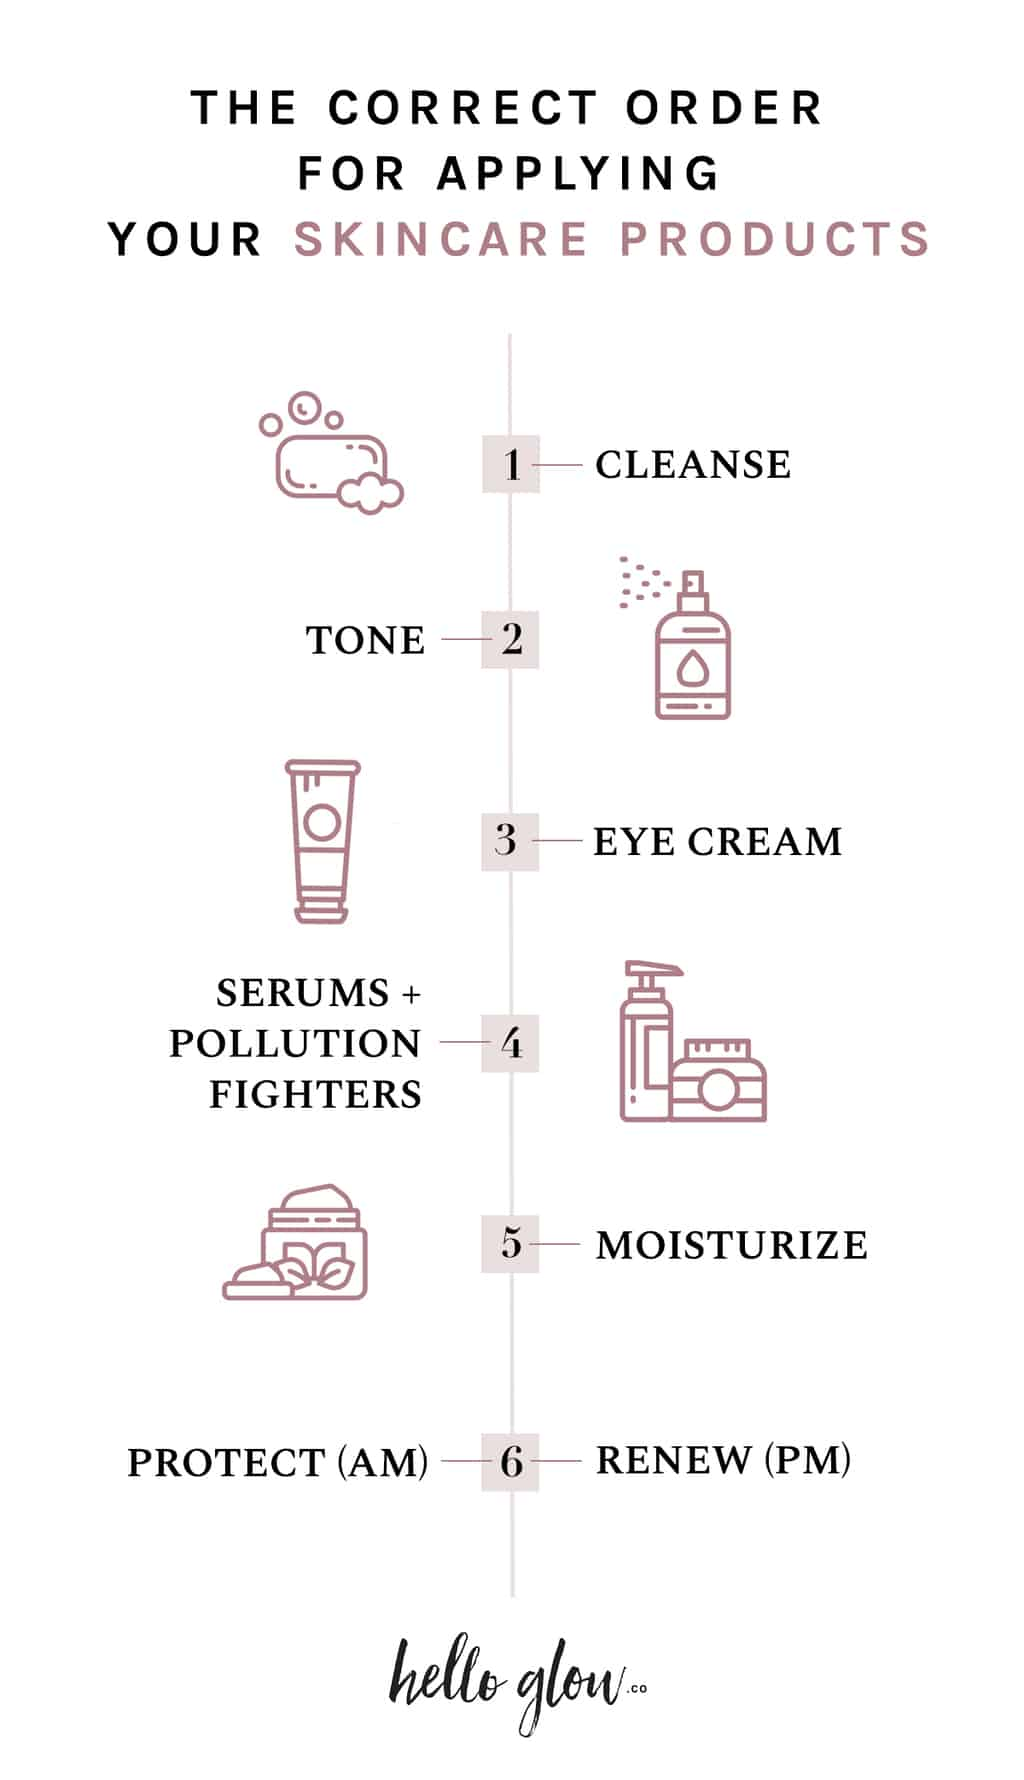 The Correct Order For Applying Your Skincare Products